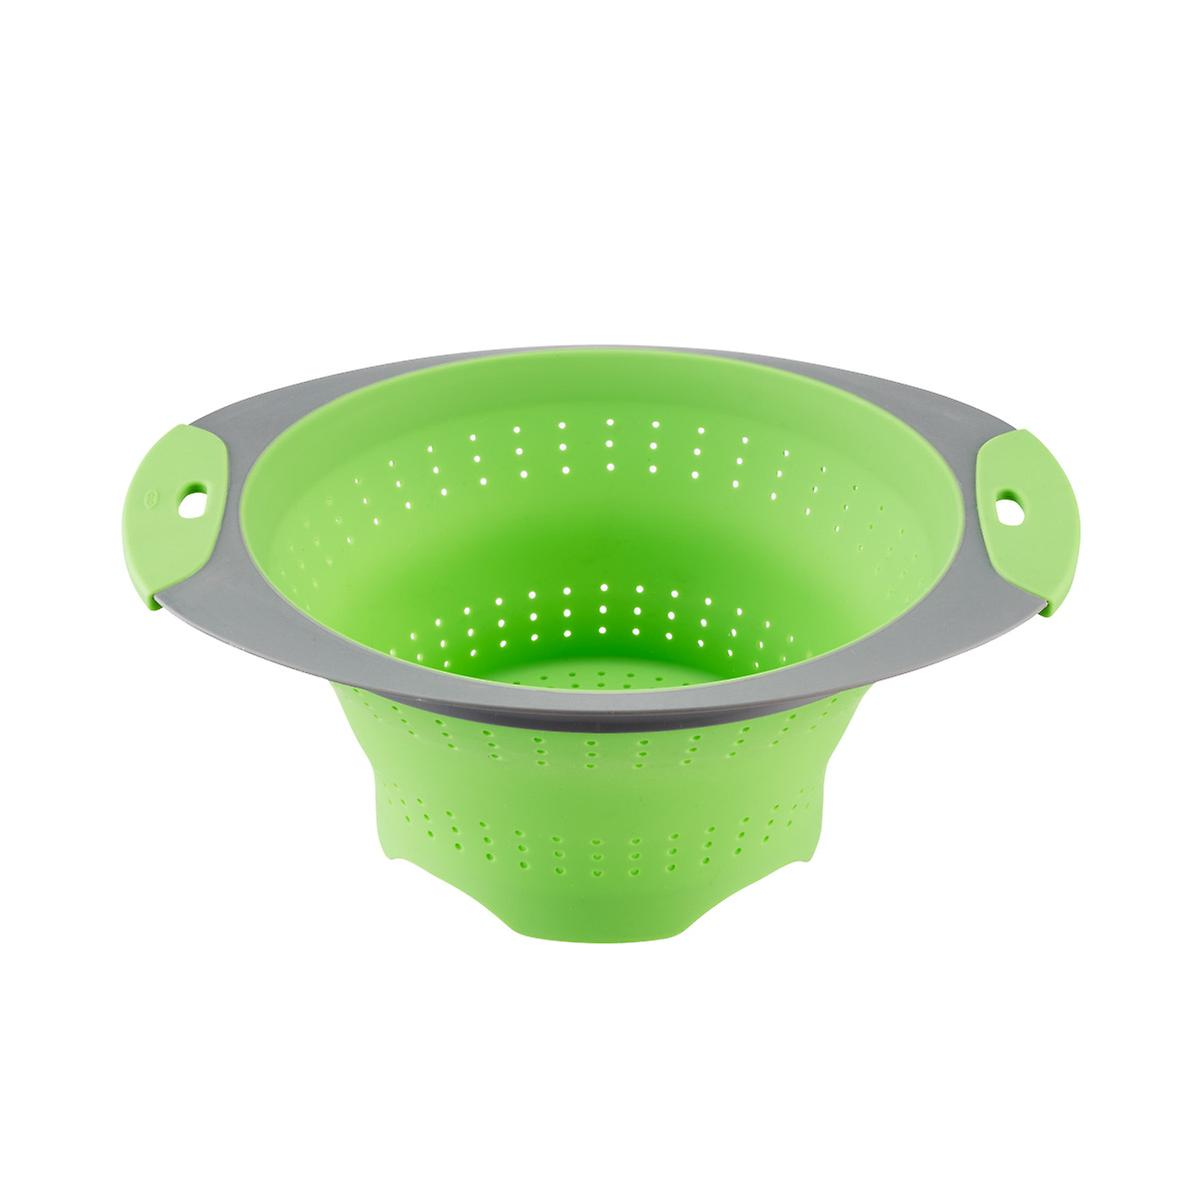 OXO 3.5 qt. Collapsible Colander